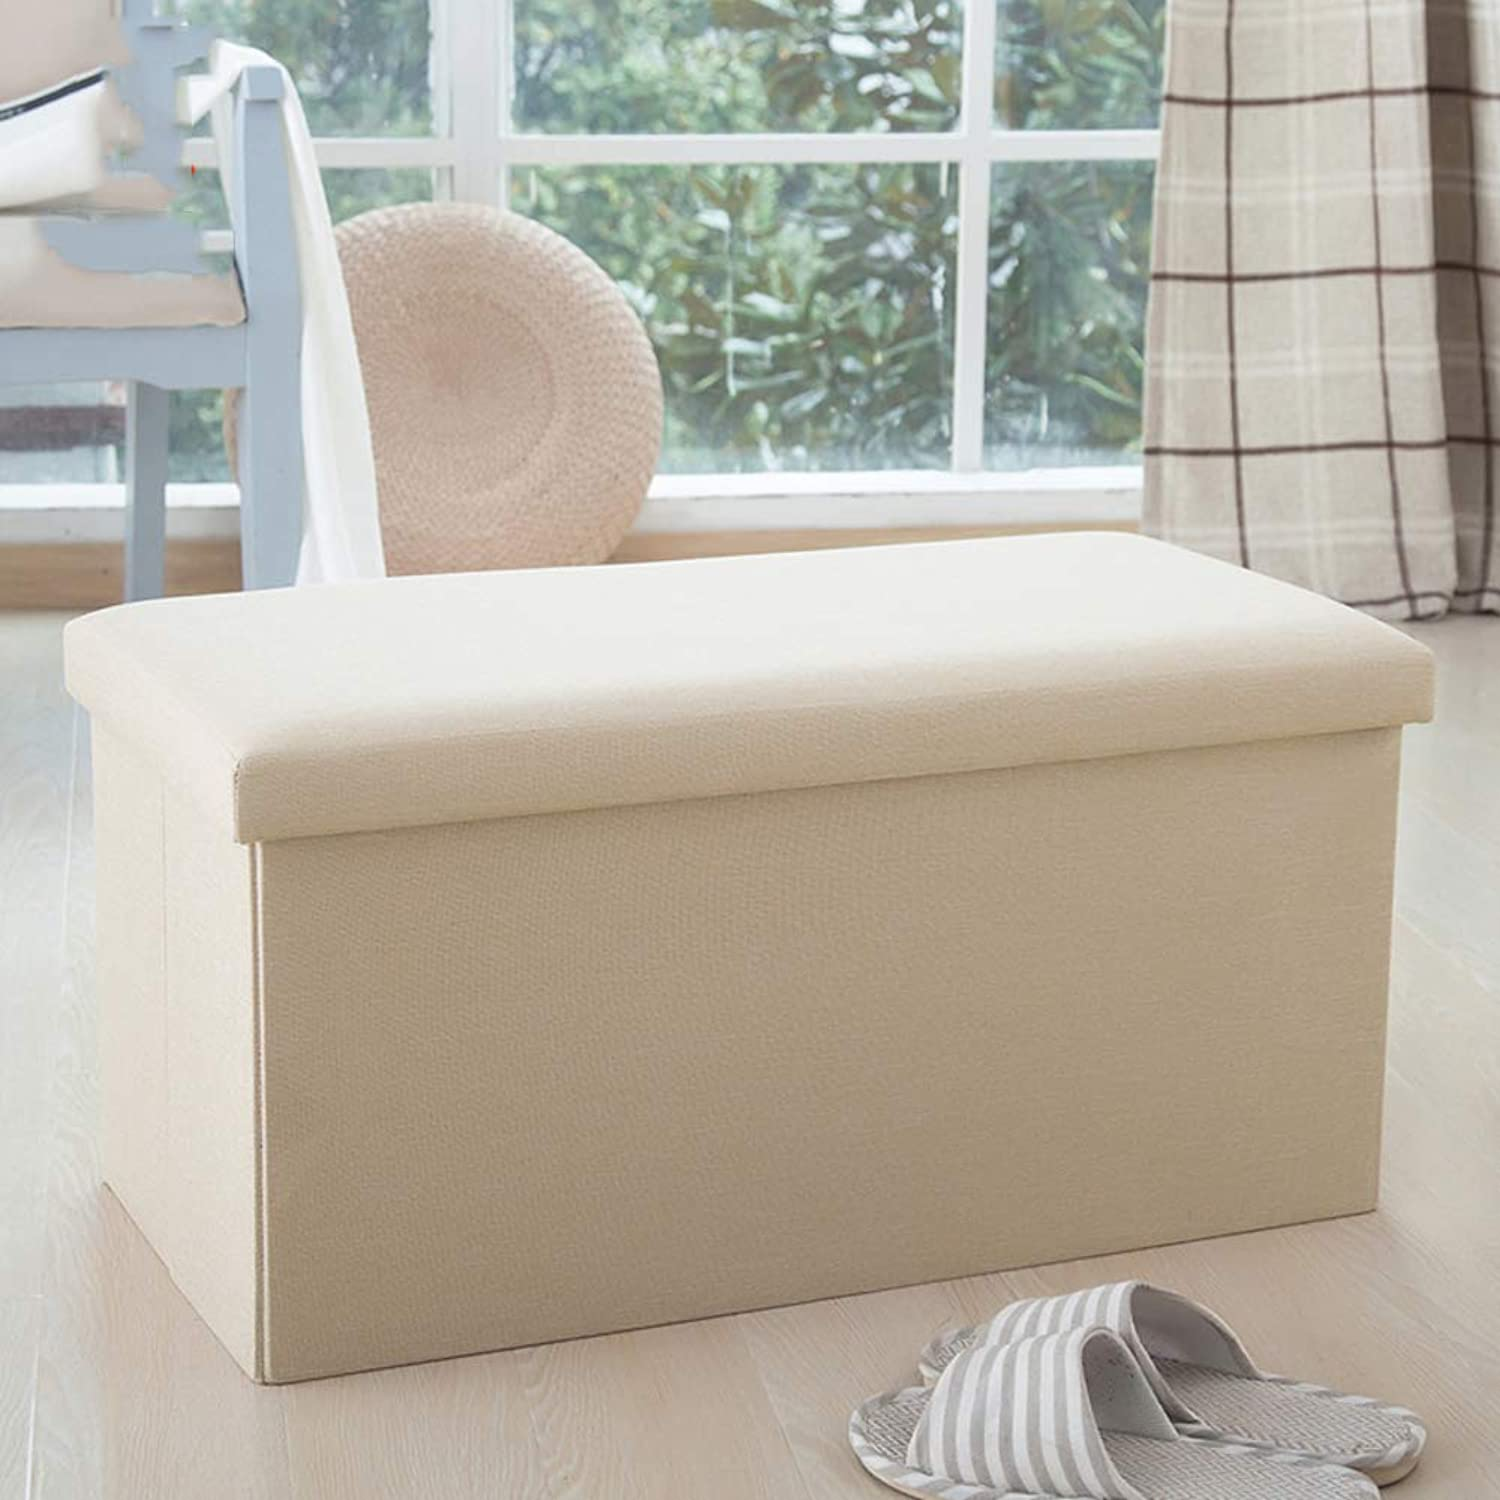 Cube Storage Foldable Linen Footstool with upholstered Padded seat Large Capacity Flipping lid -C 76x38x38cm